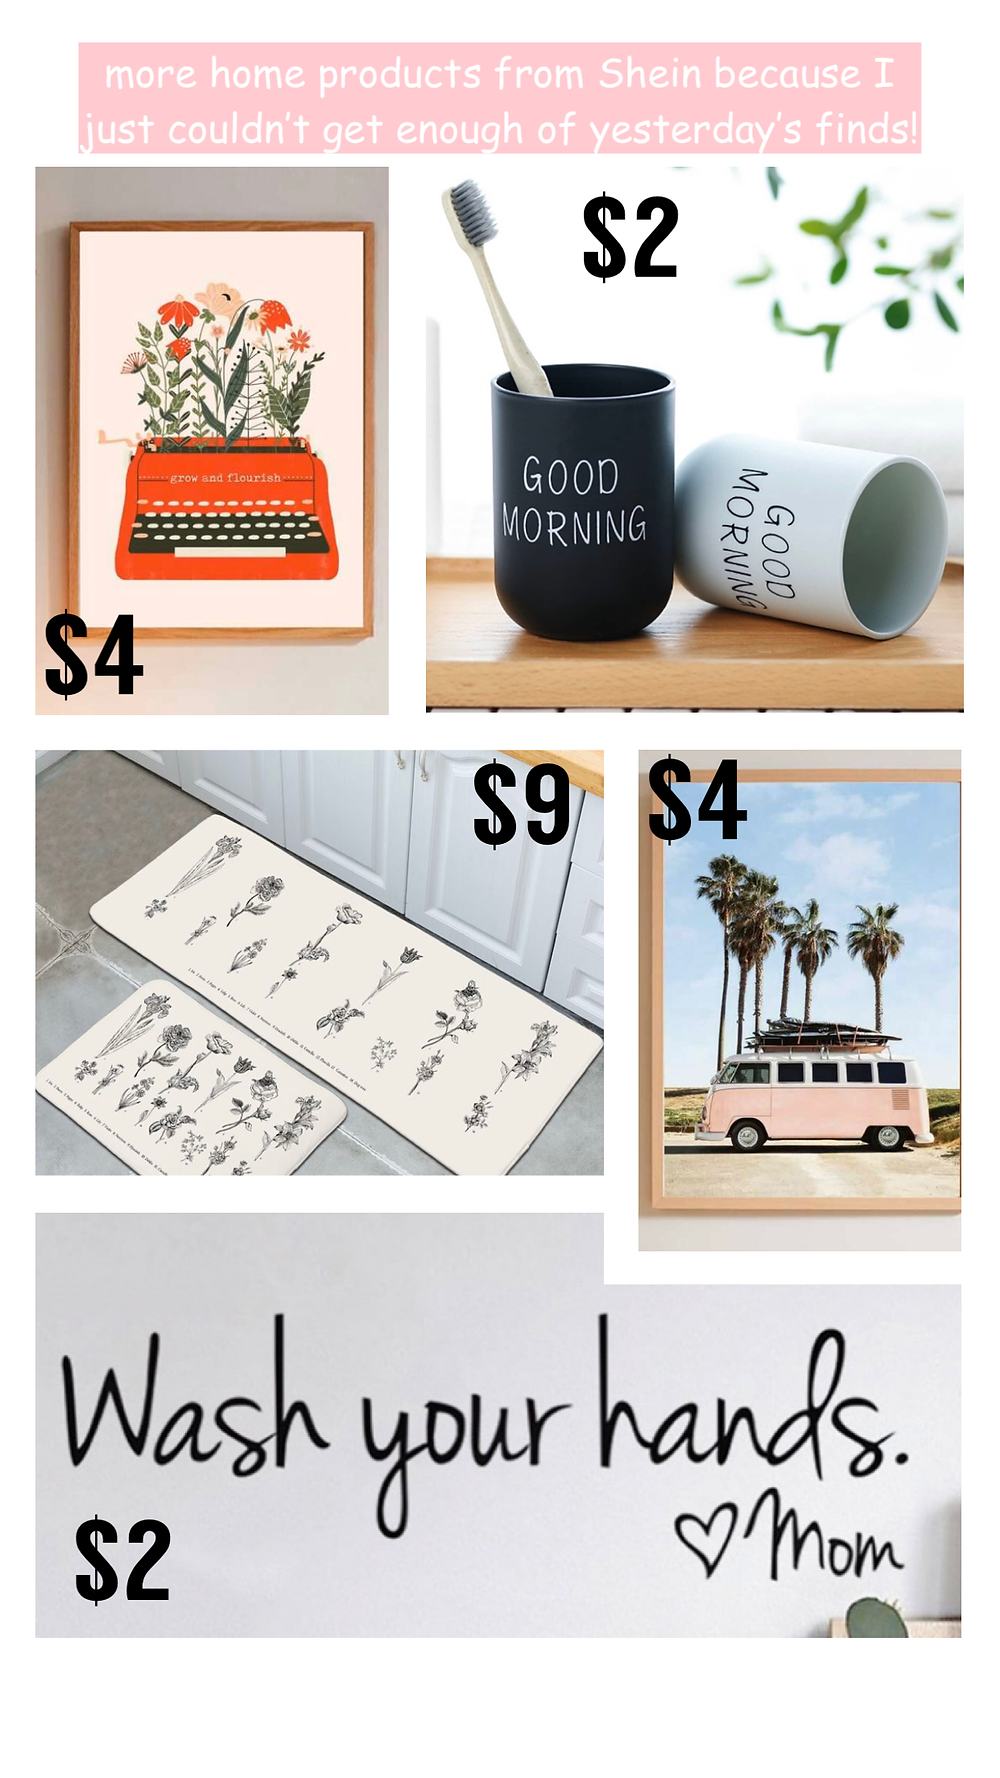 Affordable home decor from Shein